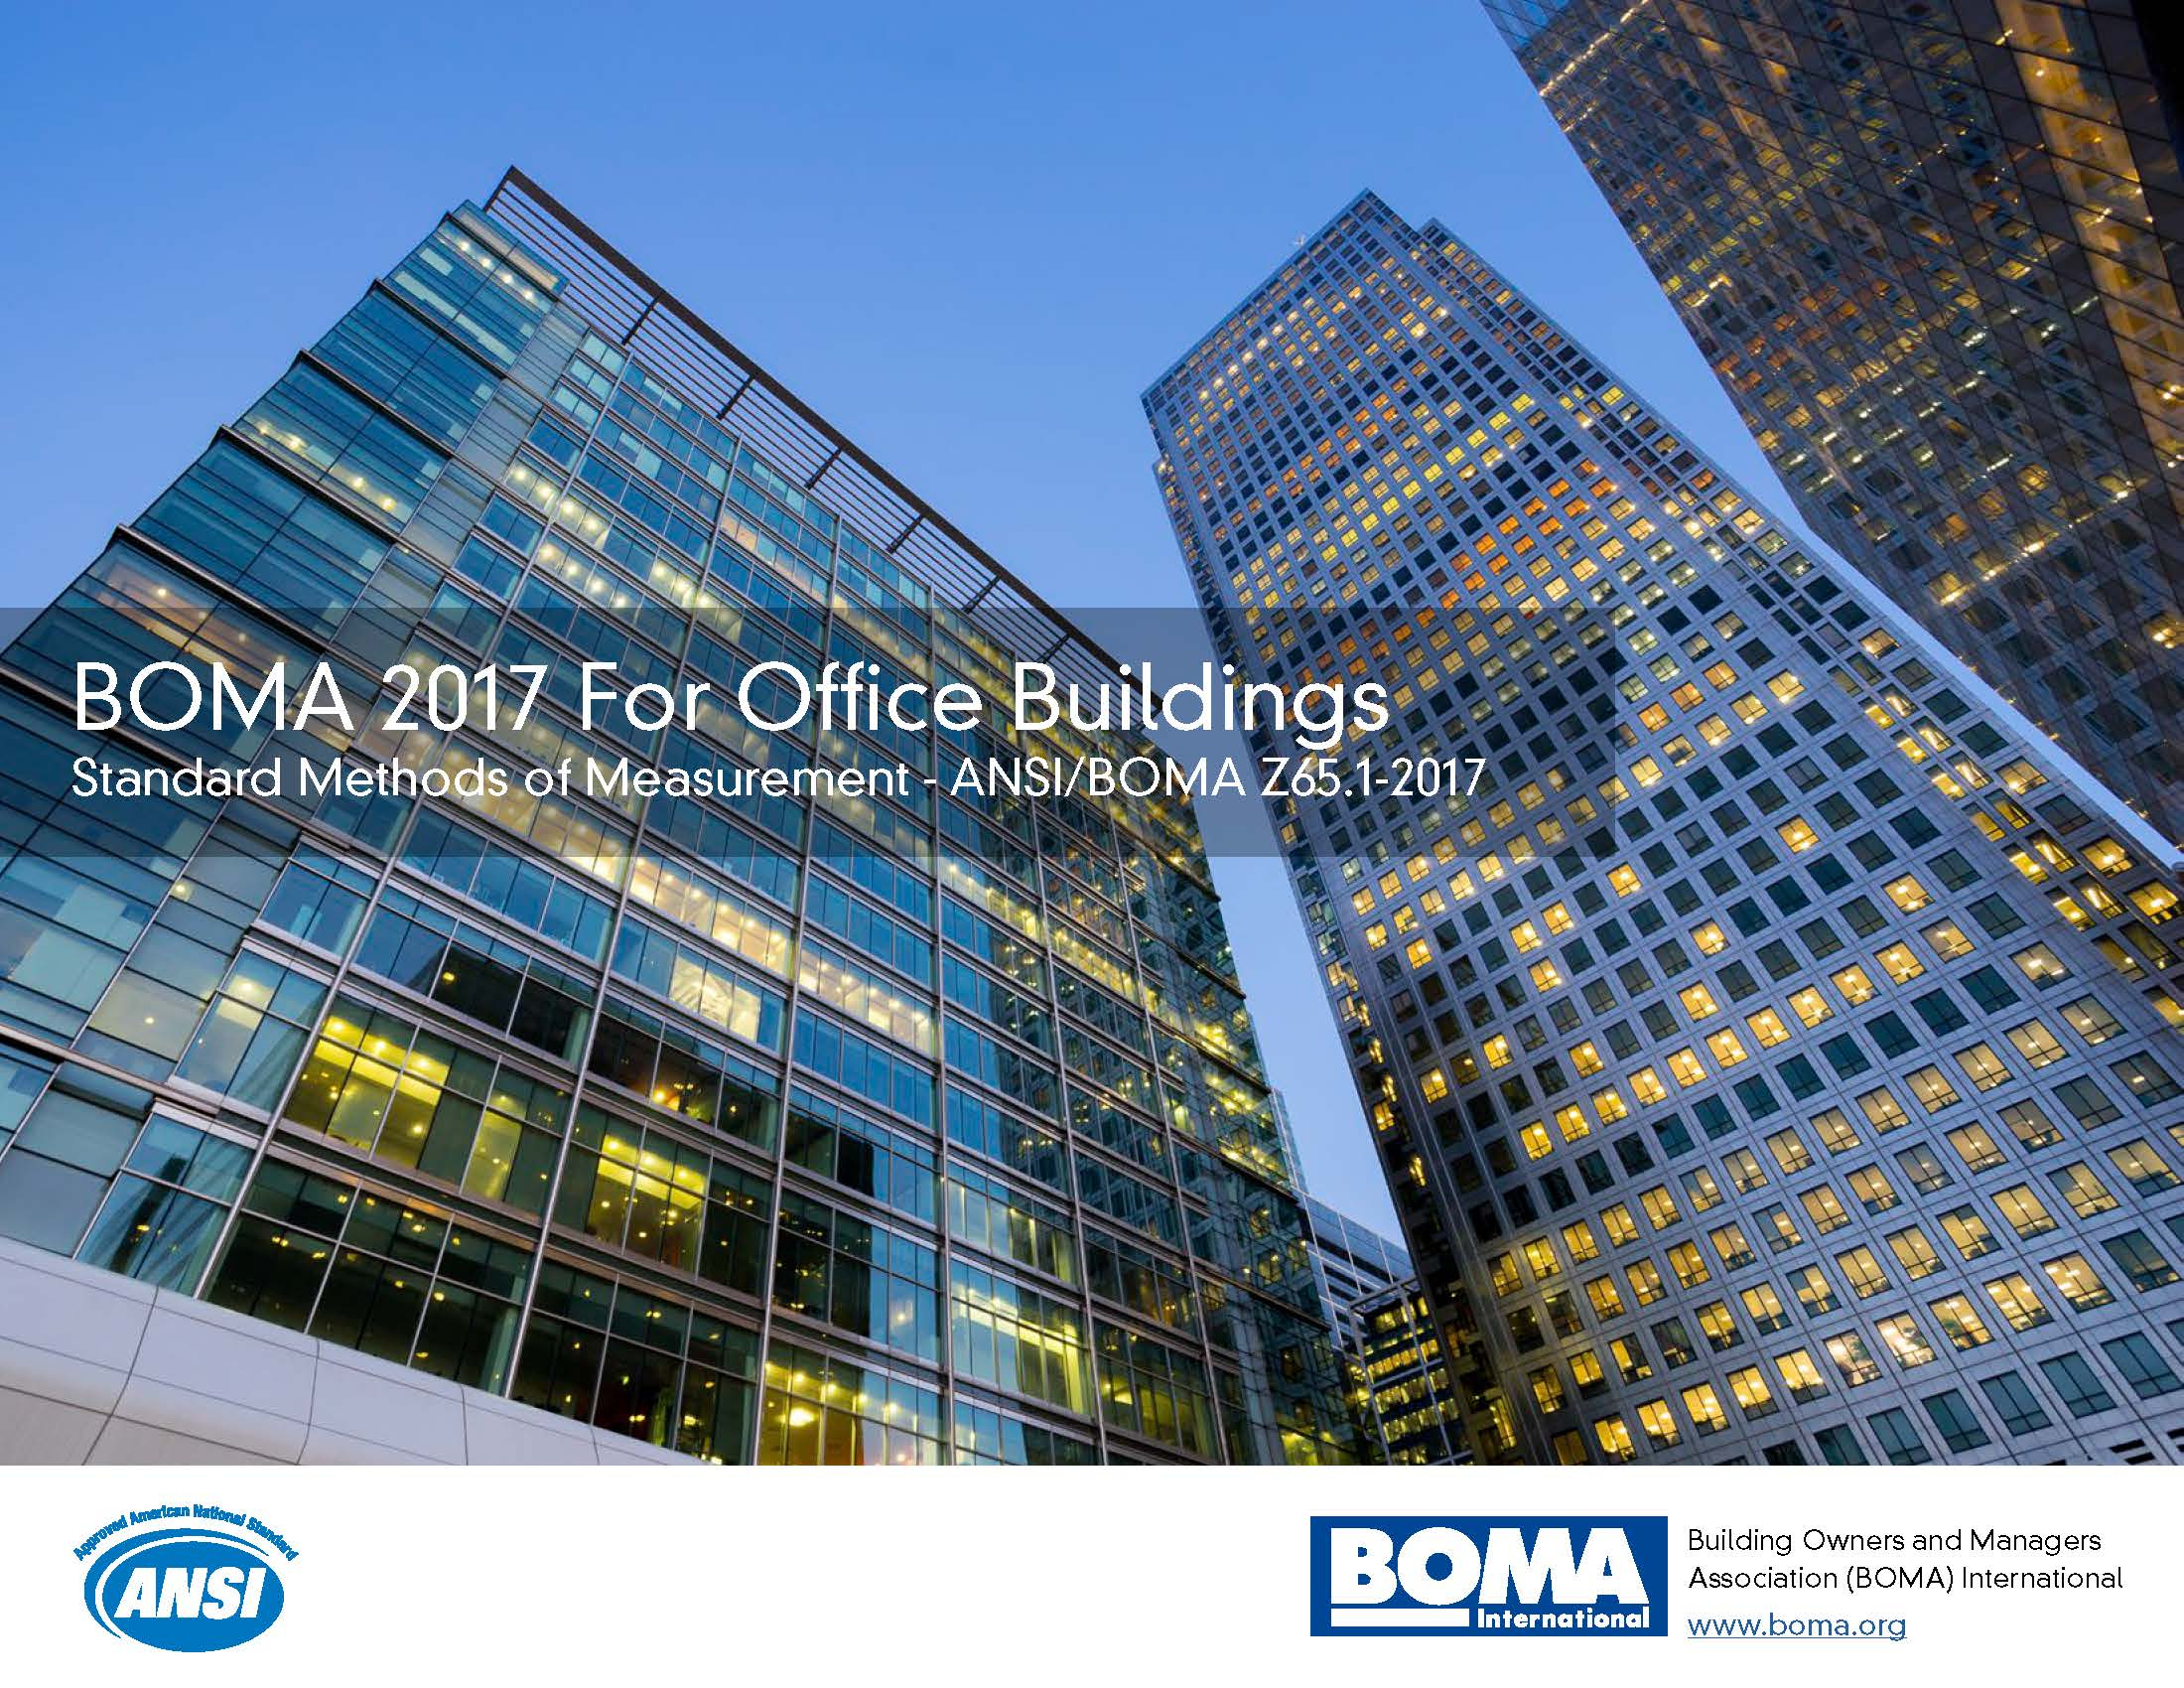 Boma 2010 Excel Spreadsheet Intended For Office Buildings